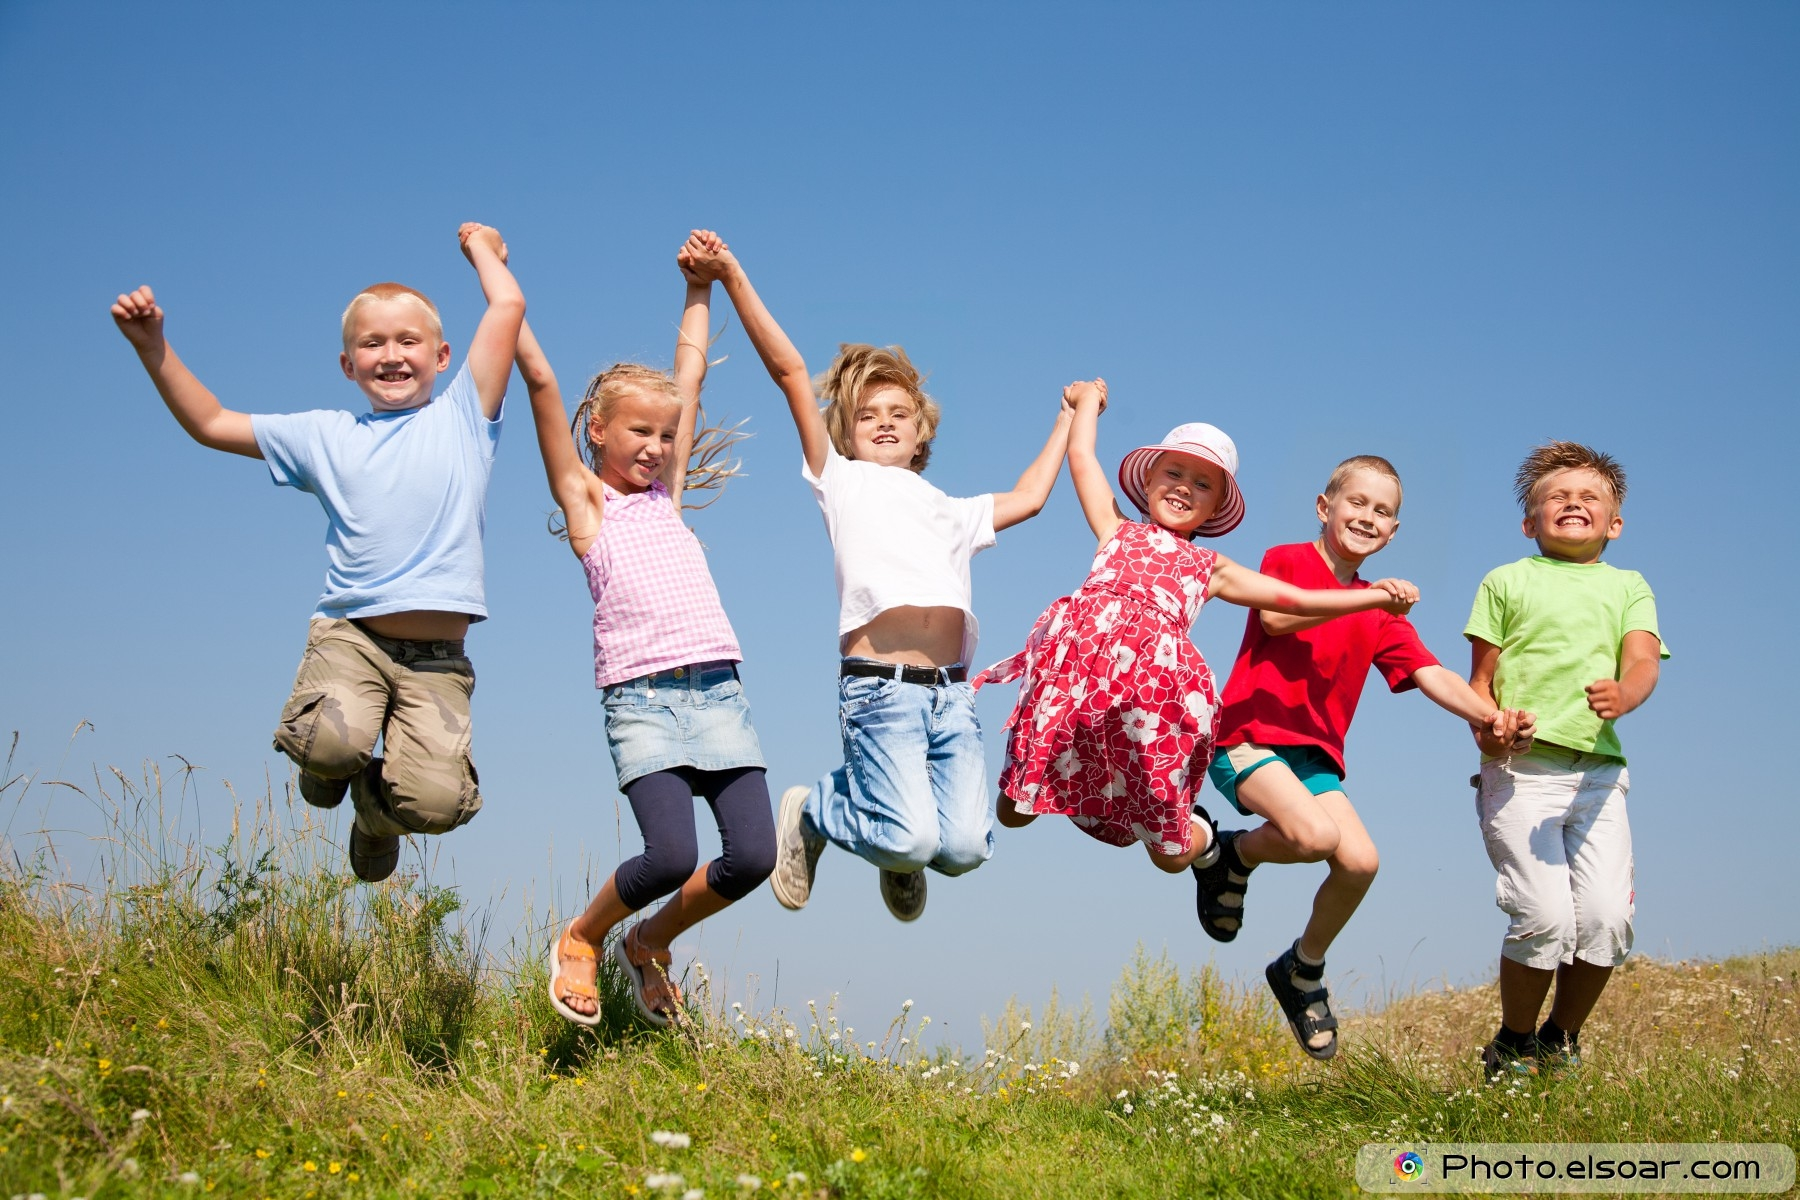 Group-happy-children-jumping-on-summer-meadow2